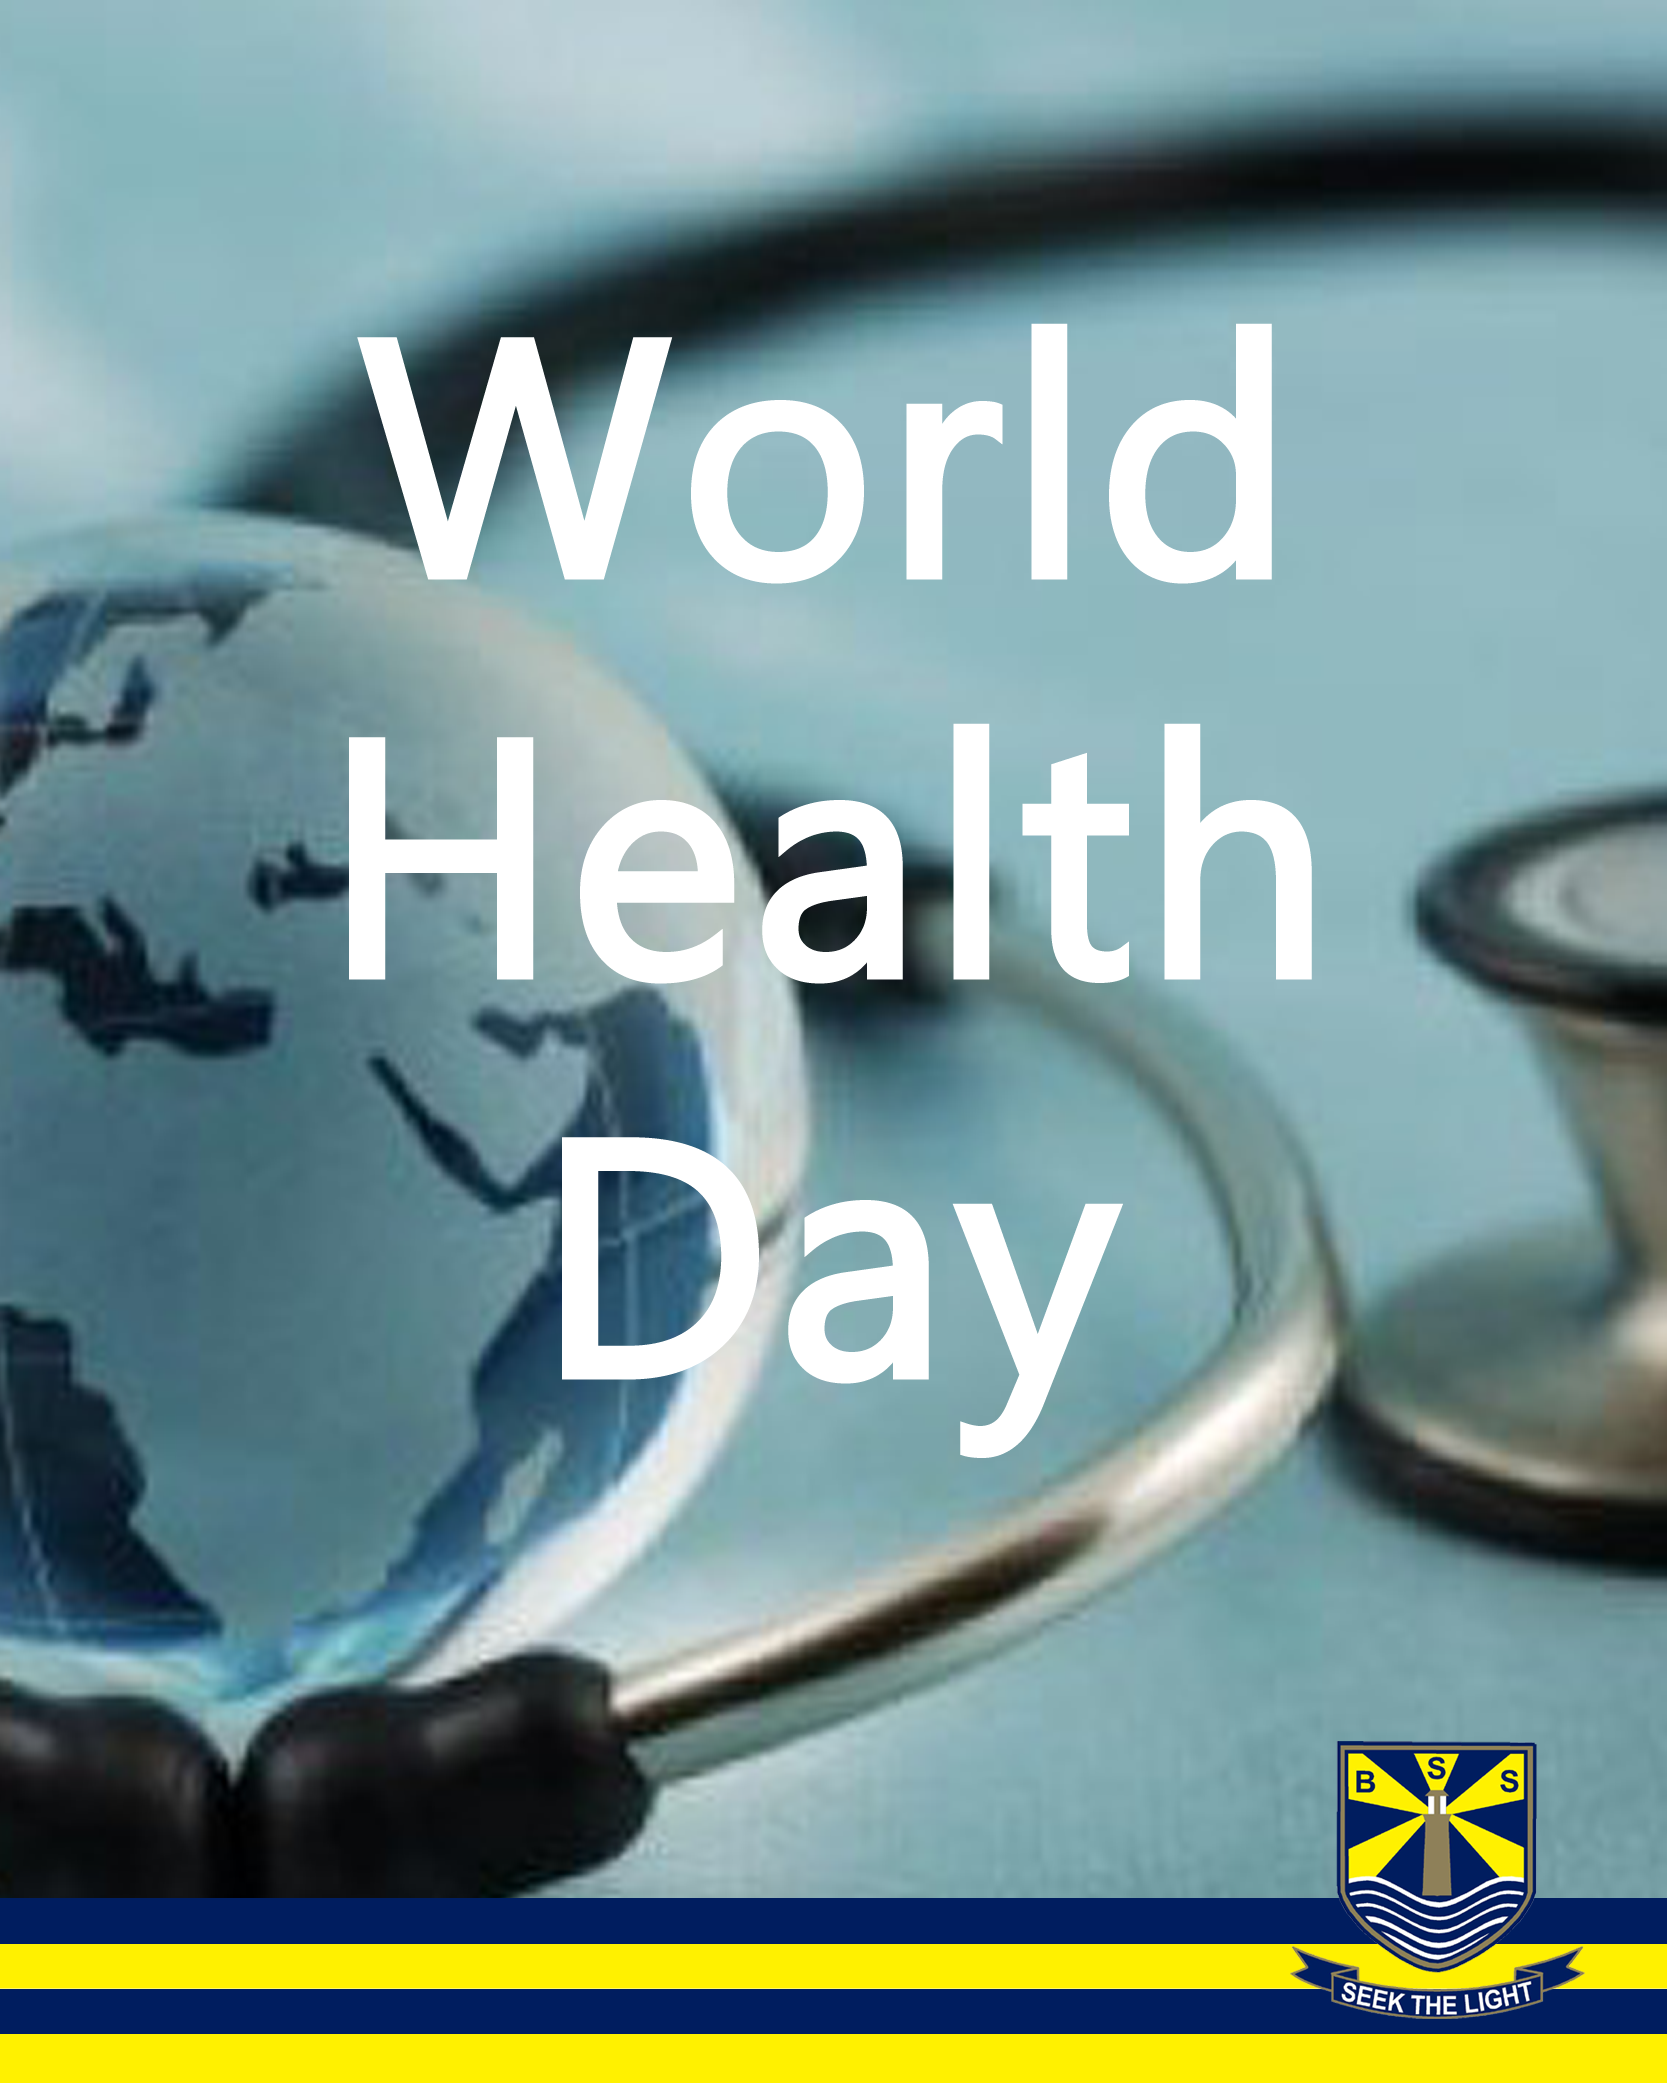 World Health Day is celebrated on 7 April every year to